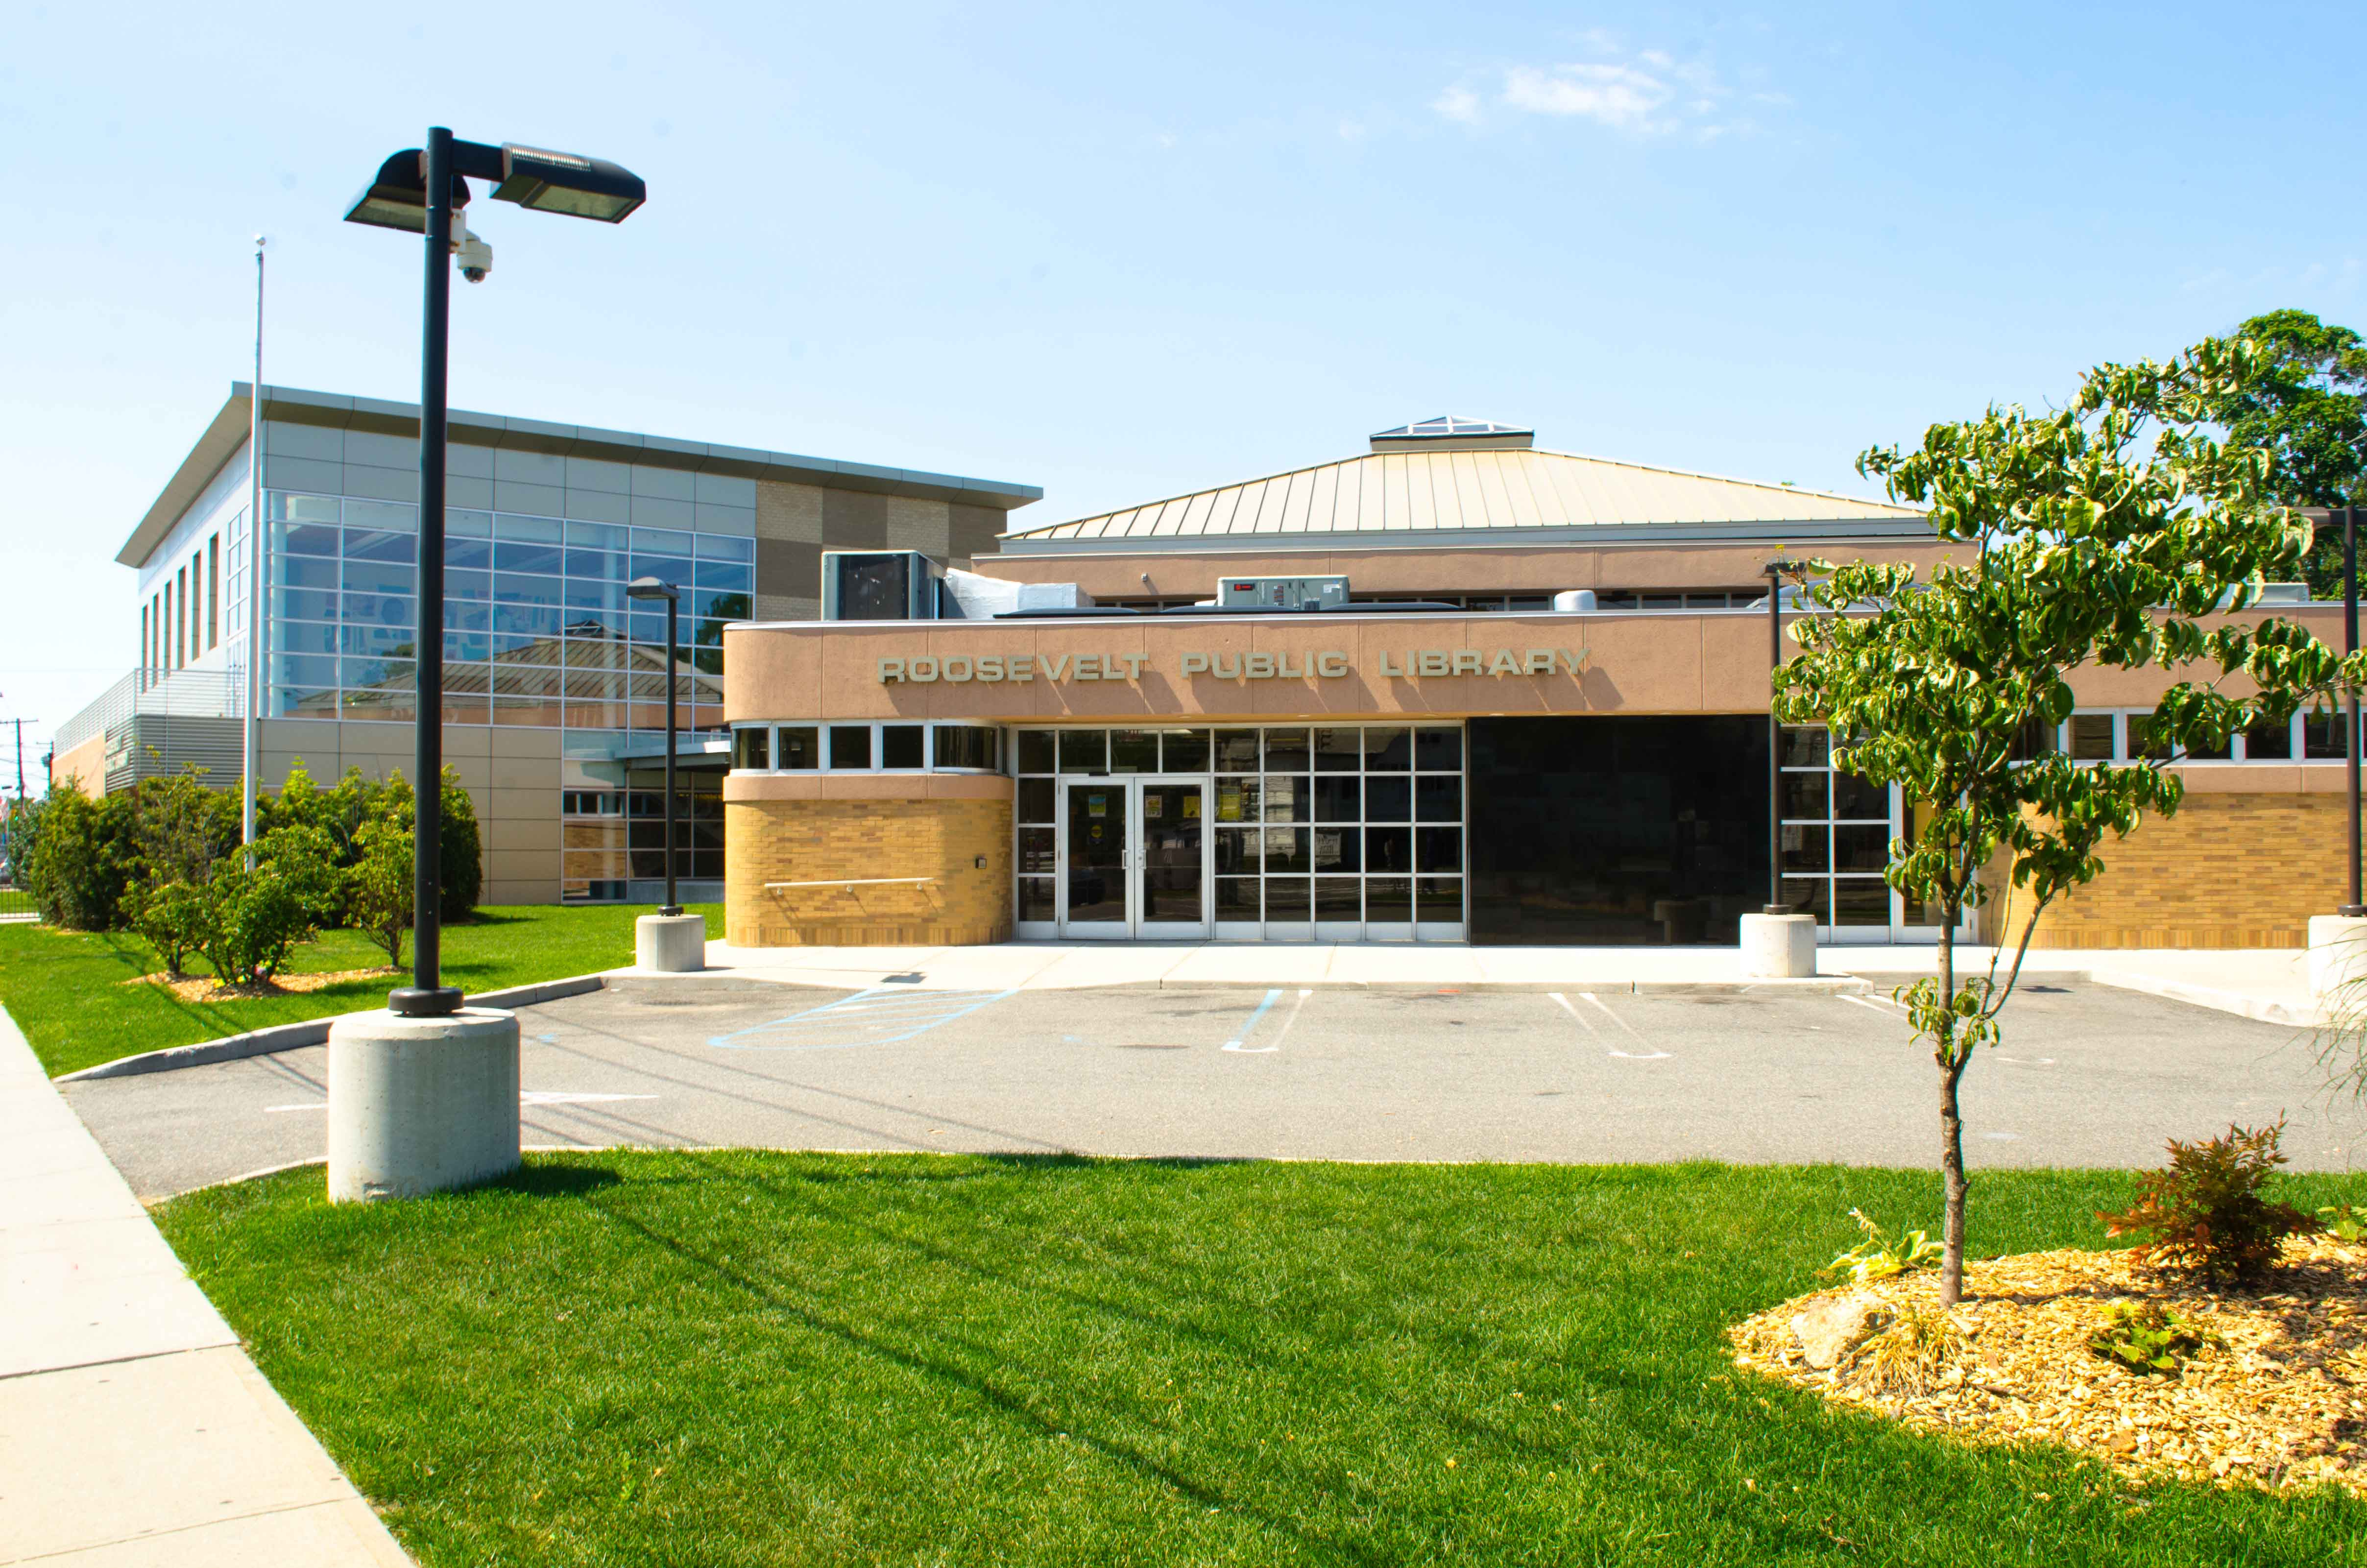 Roosevelt Public Library Grand Opening